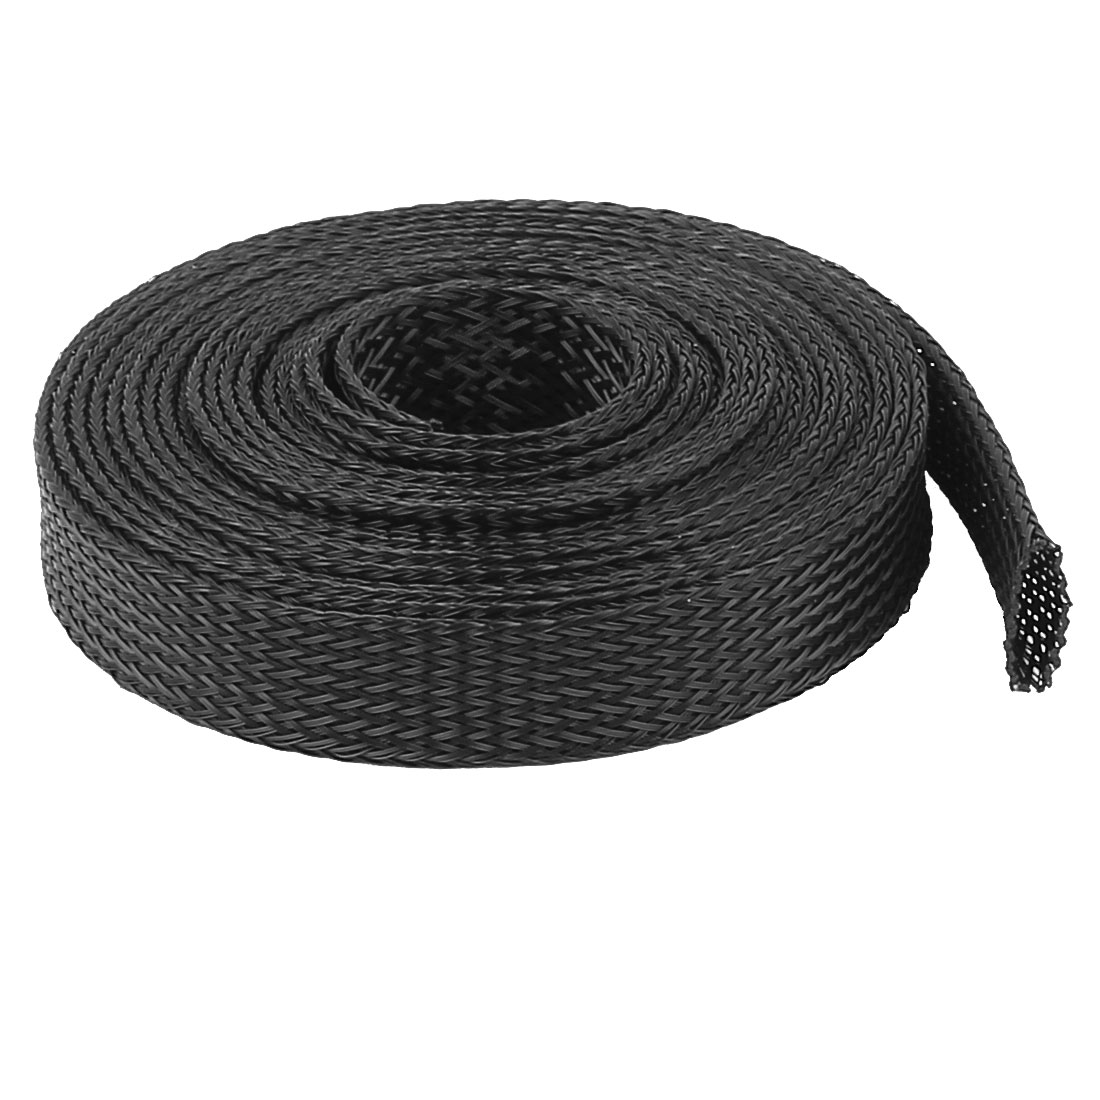 12mm PET Cable Wire Wrap Expandable Braided Sleeving 3 Meter